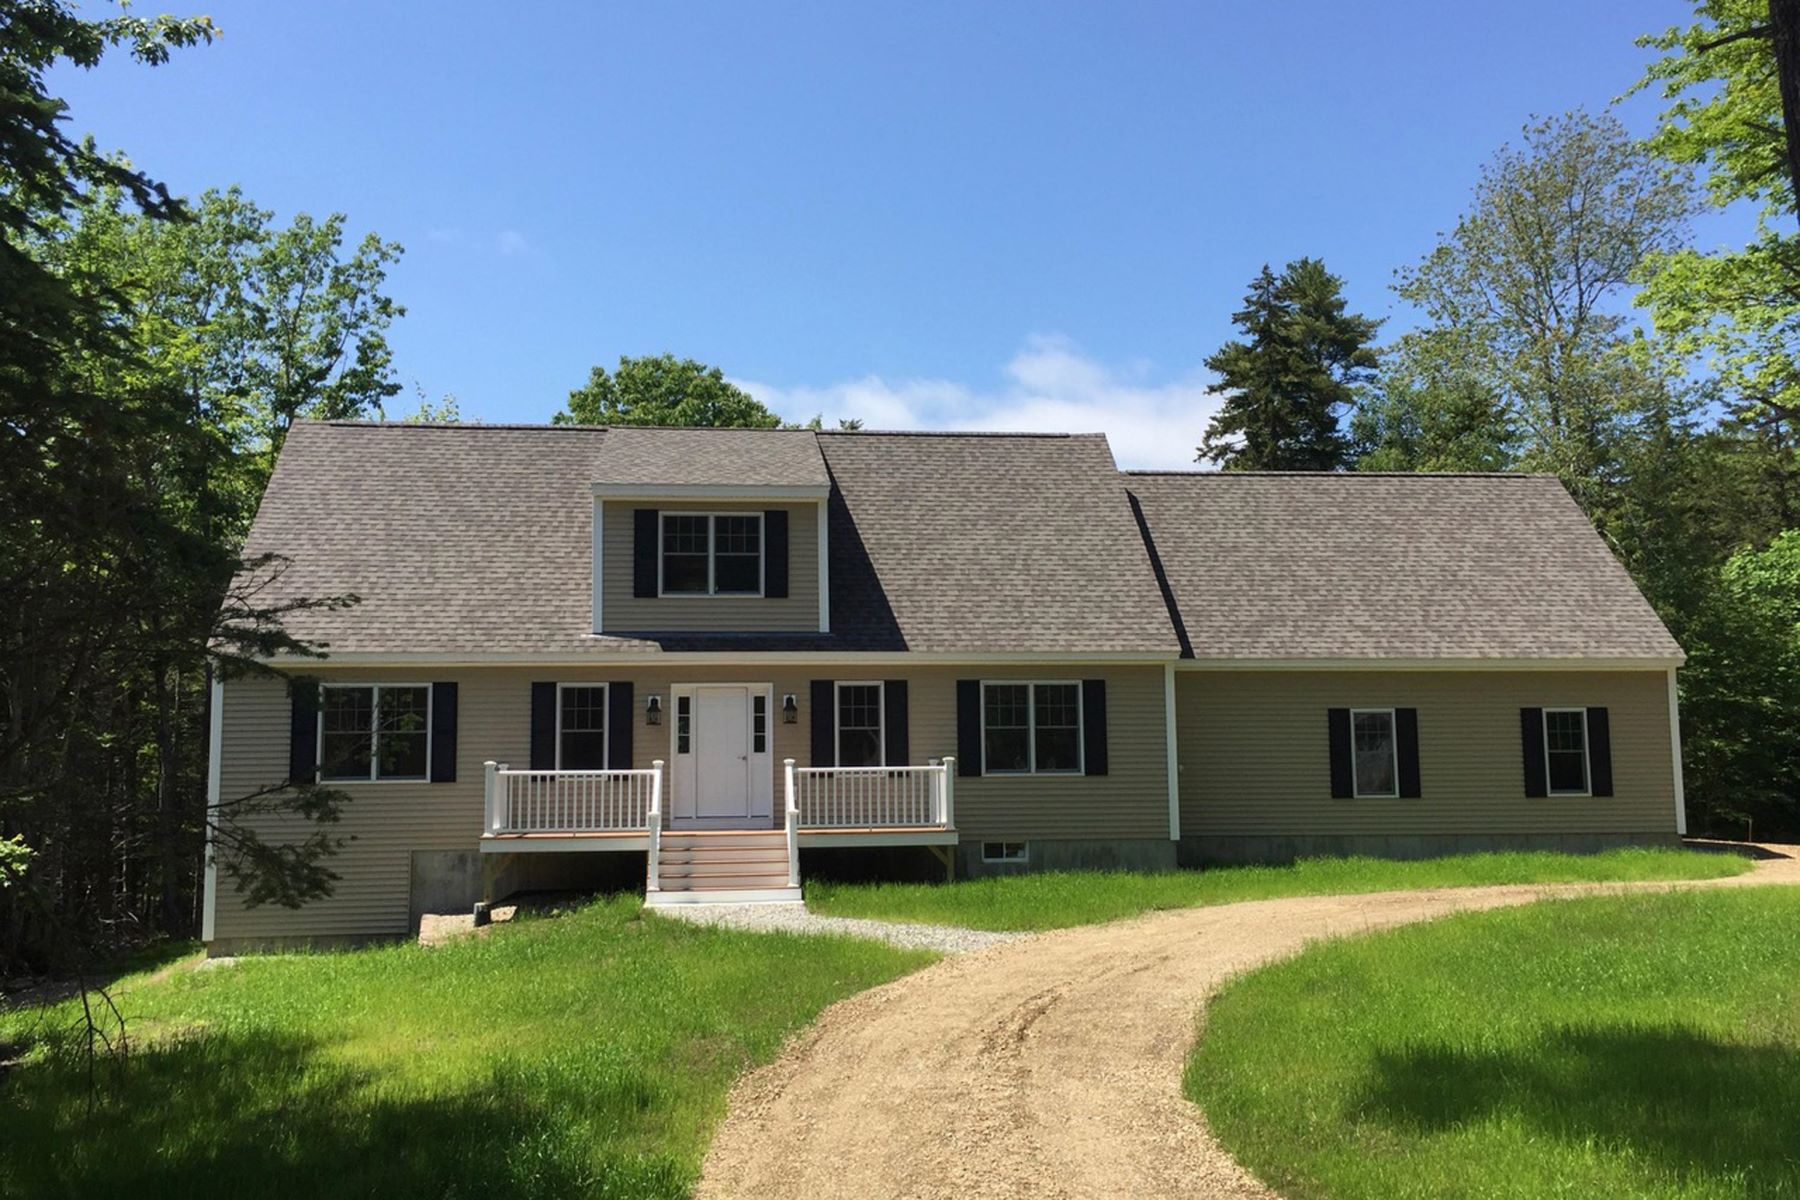 Single Family Homes for Sale at 6 Cooper Way South Bristol, Maine 04573 United States